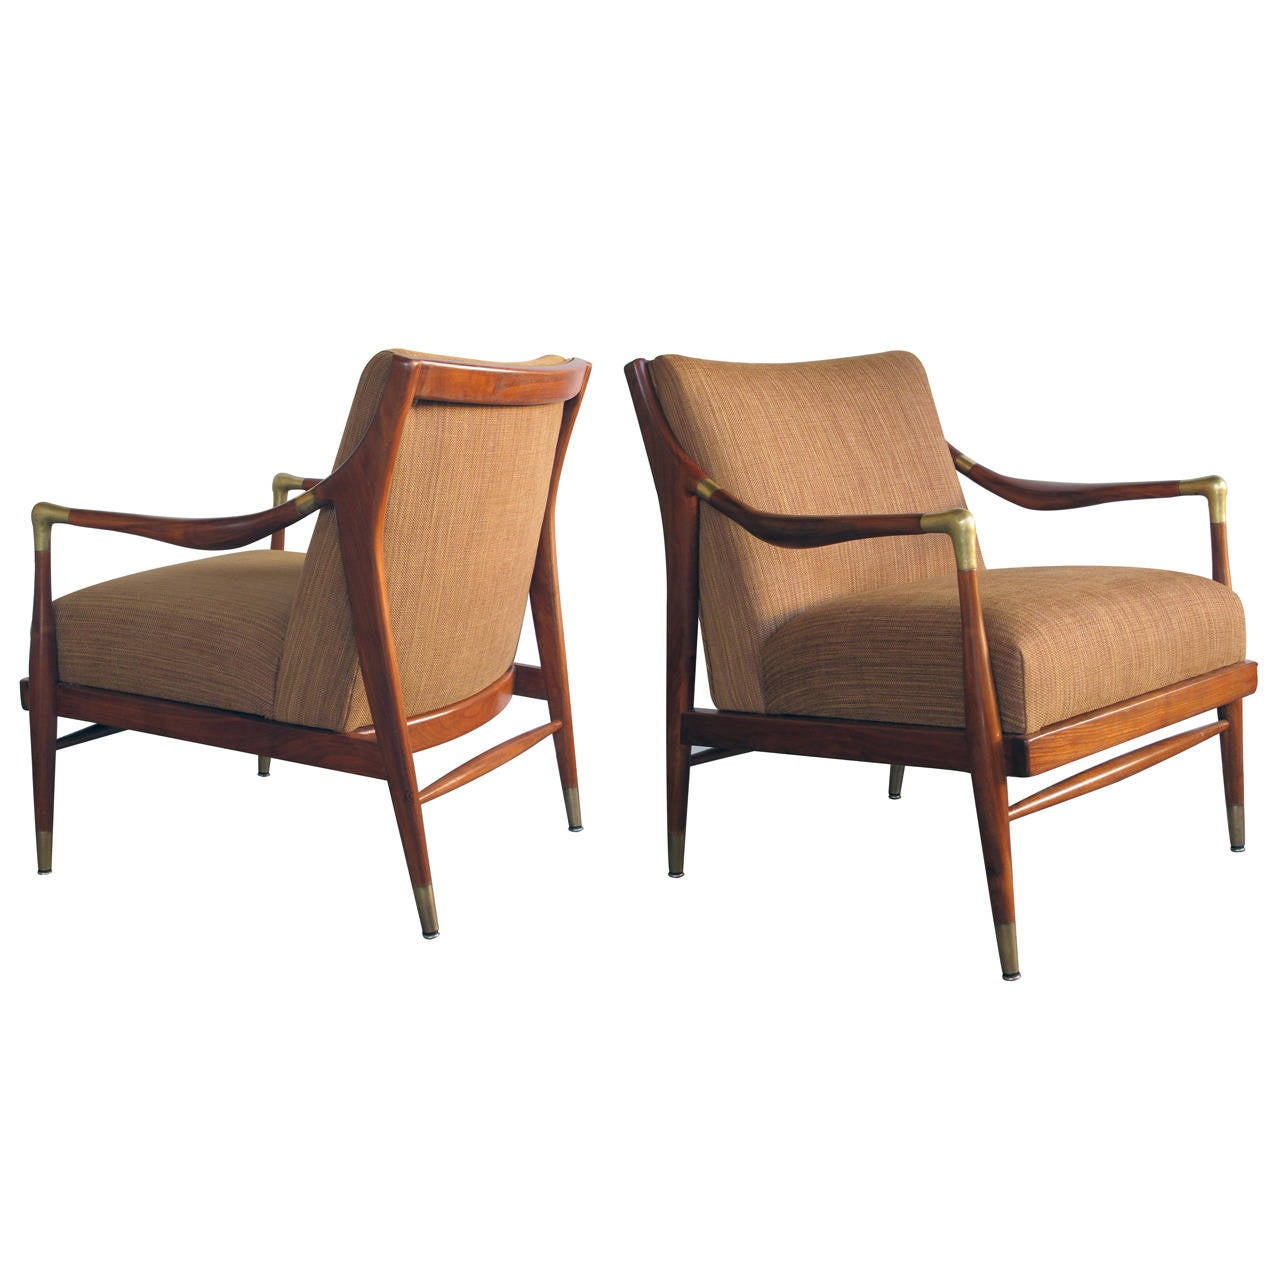 This sculptural pair of lounge chairs by ib kofod larsen is no longer - Pair Of Danish Modern 1960s Brass Accented Lounge Chairs Ib Kofod Larsen 1